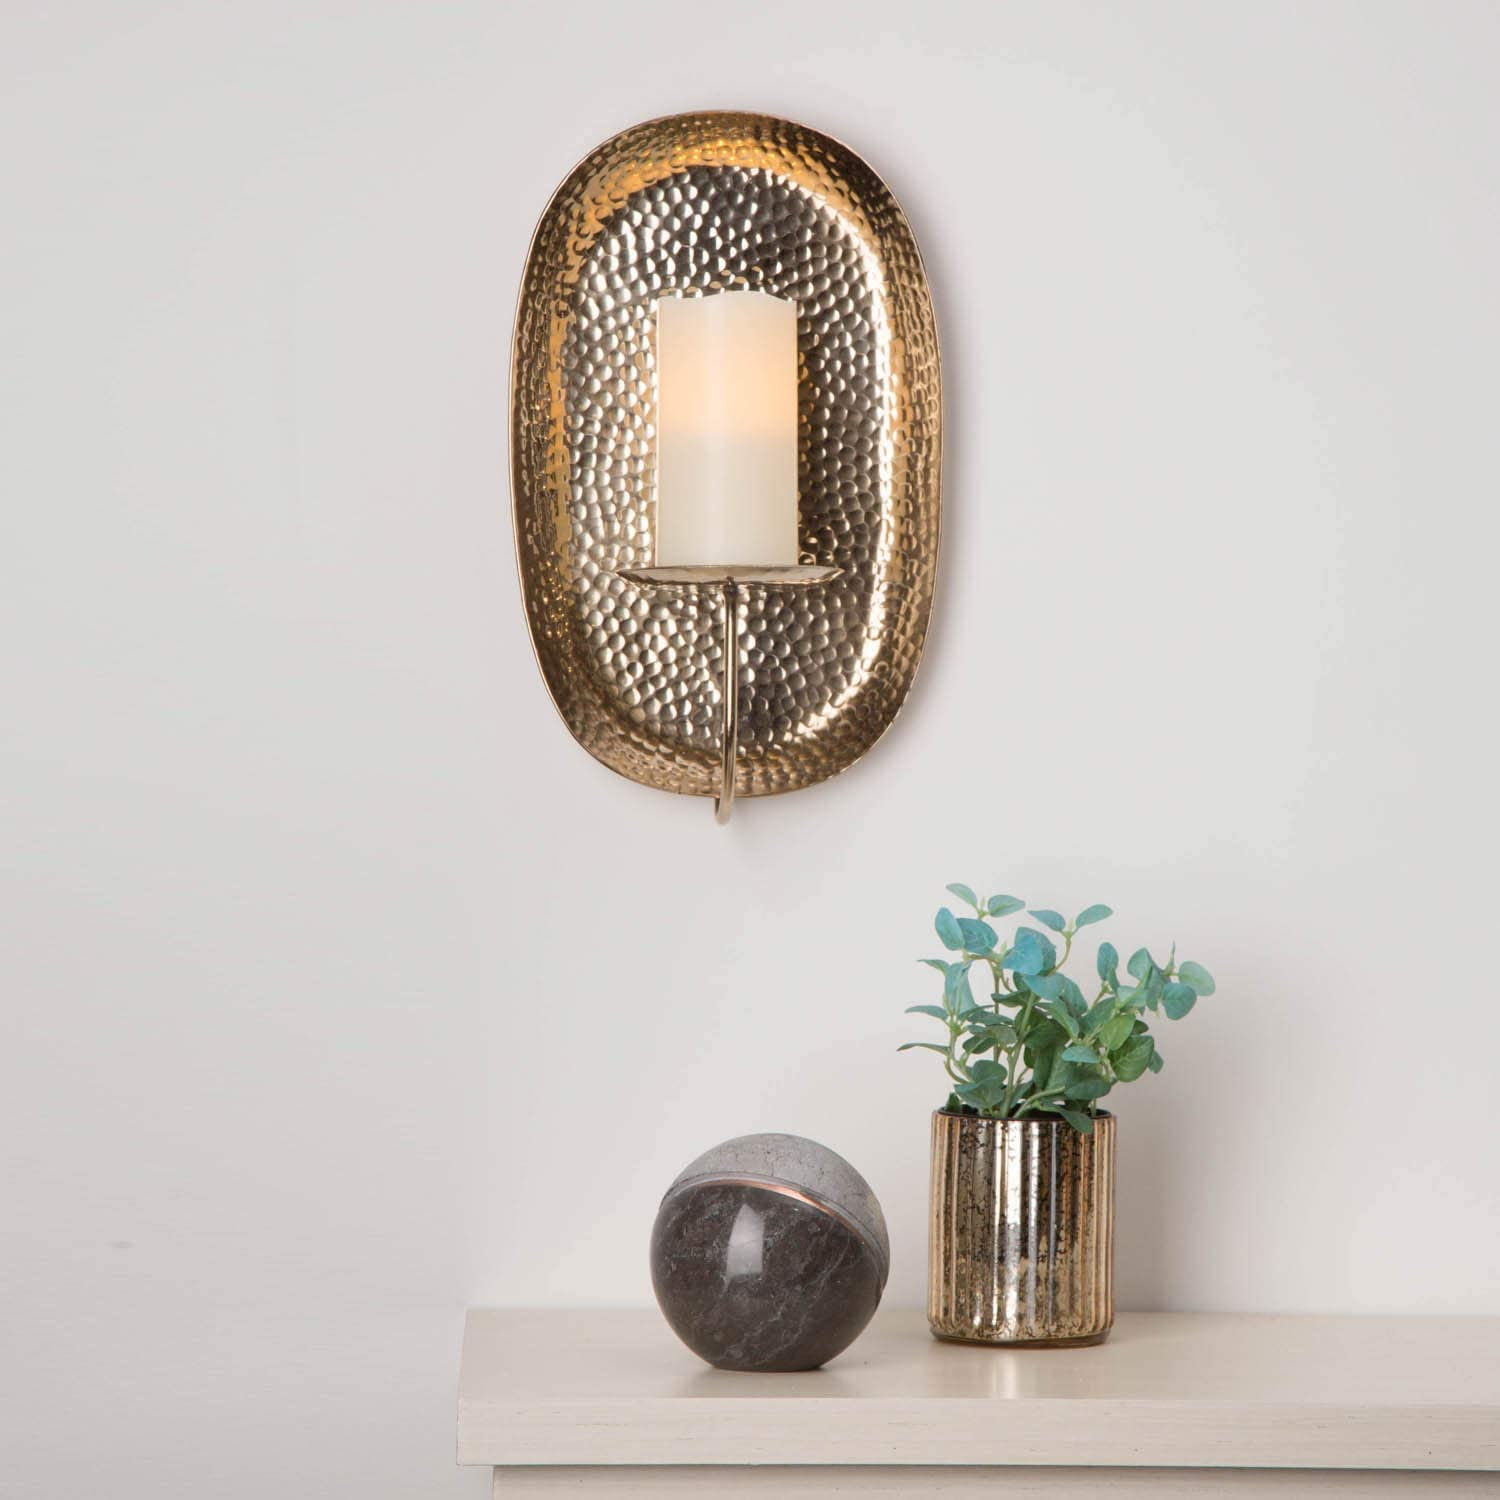 Fits up to 3 Inch Diameter Pillar Candles Brass Plated LampLust Wall Candle Holder Sconce Wall Art for Home Decor 15 Inch Tall Modern Hammered Finish